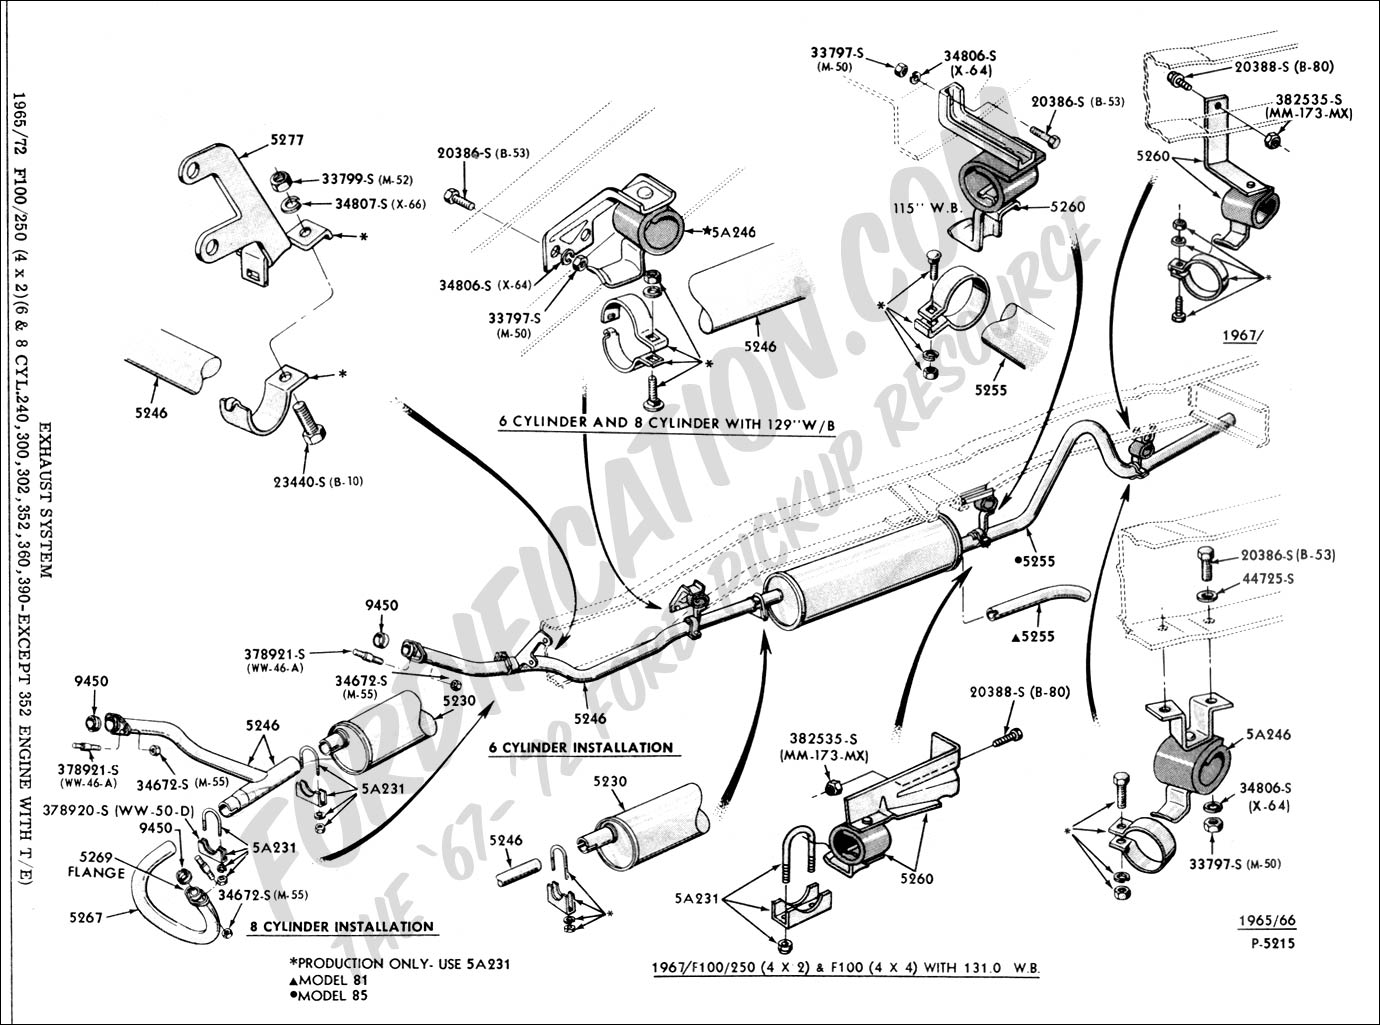 F150 Exhaust Diagram Wiring Data 1992 2005 Diagrams Click 2016 2000 Ford System